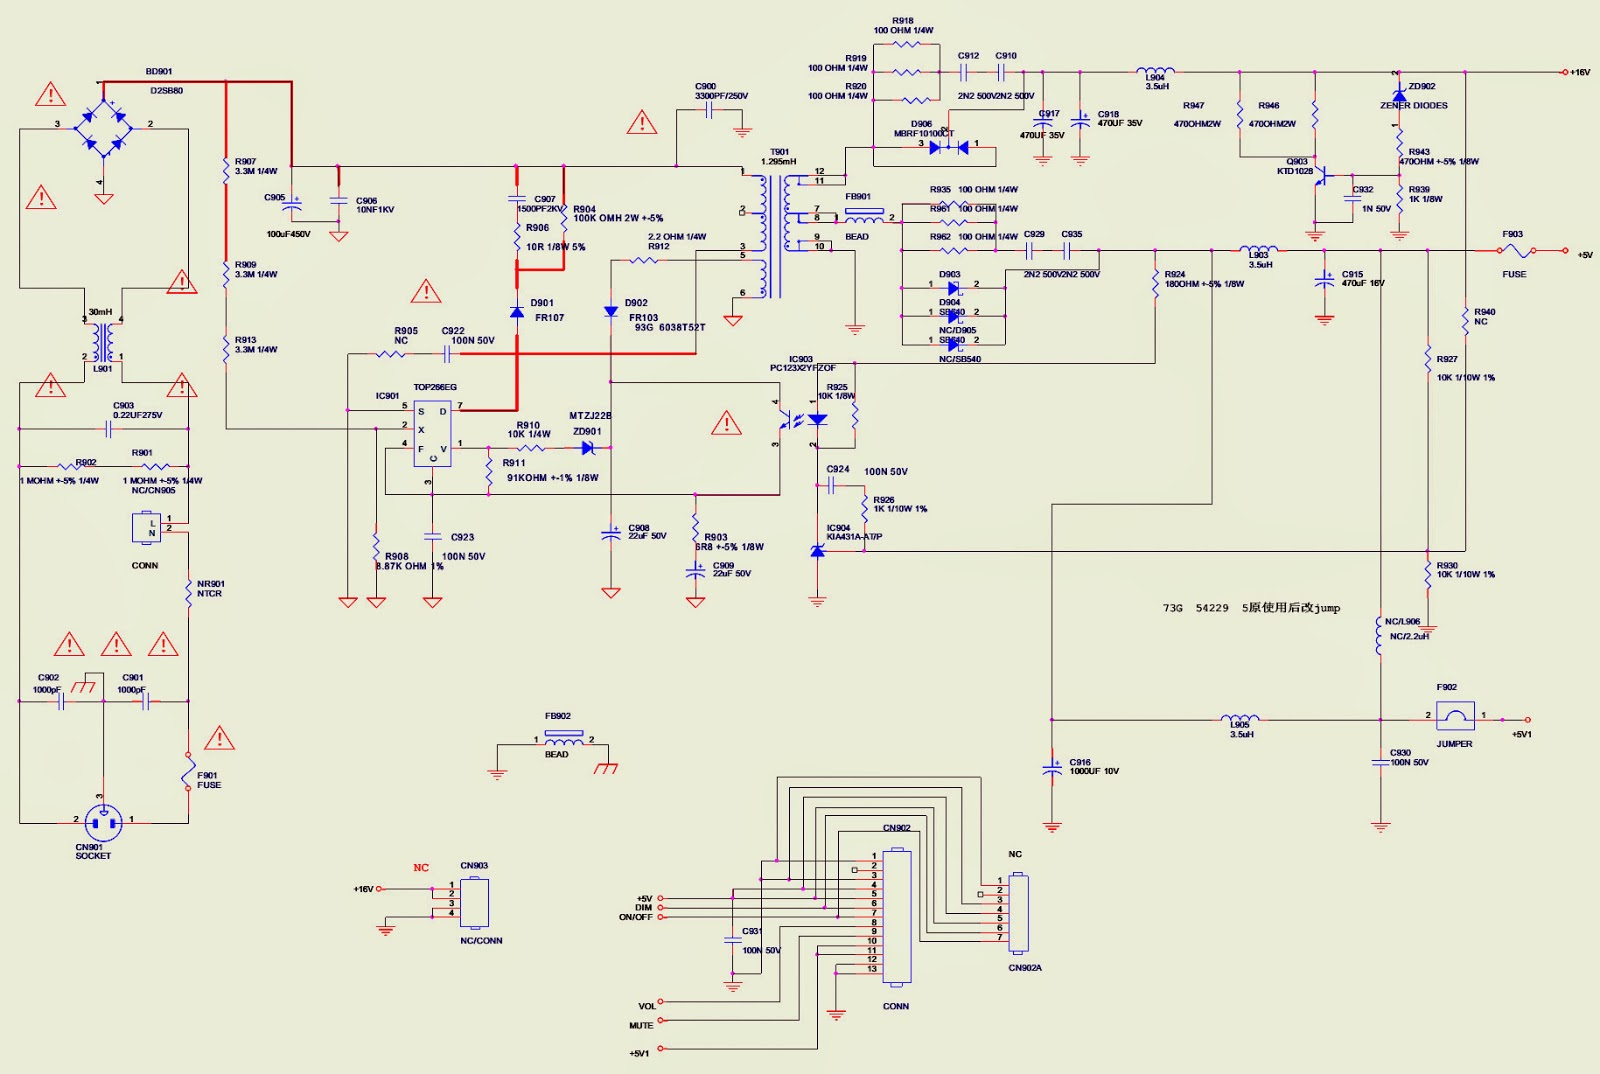 Monitor Power Control Wiring Diagram Data Circuit Schematic Along With Remote Switch Inverter Philips 20 Lcd Access